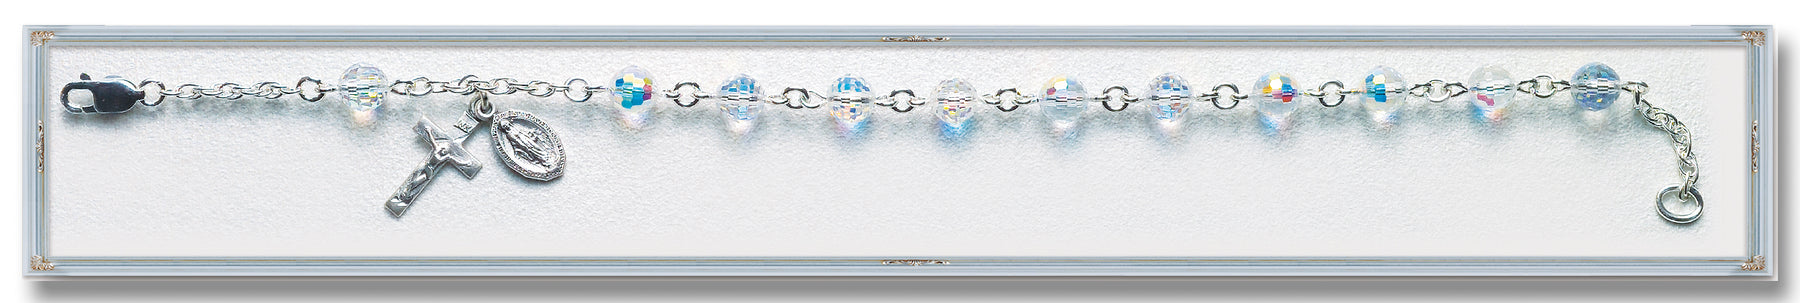 Aurora Multi Faceted Swarovski Crystal Sterling Bracelet